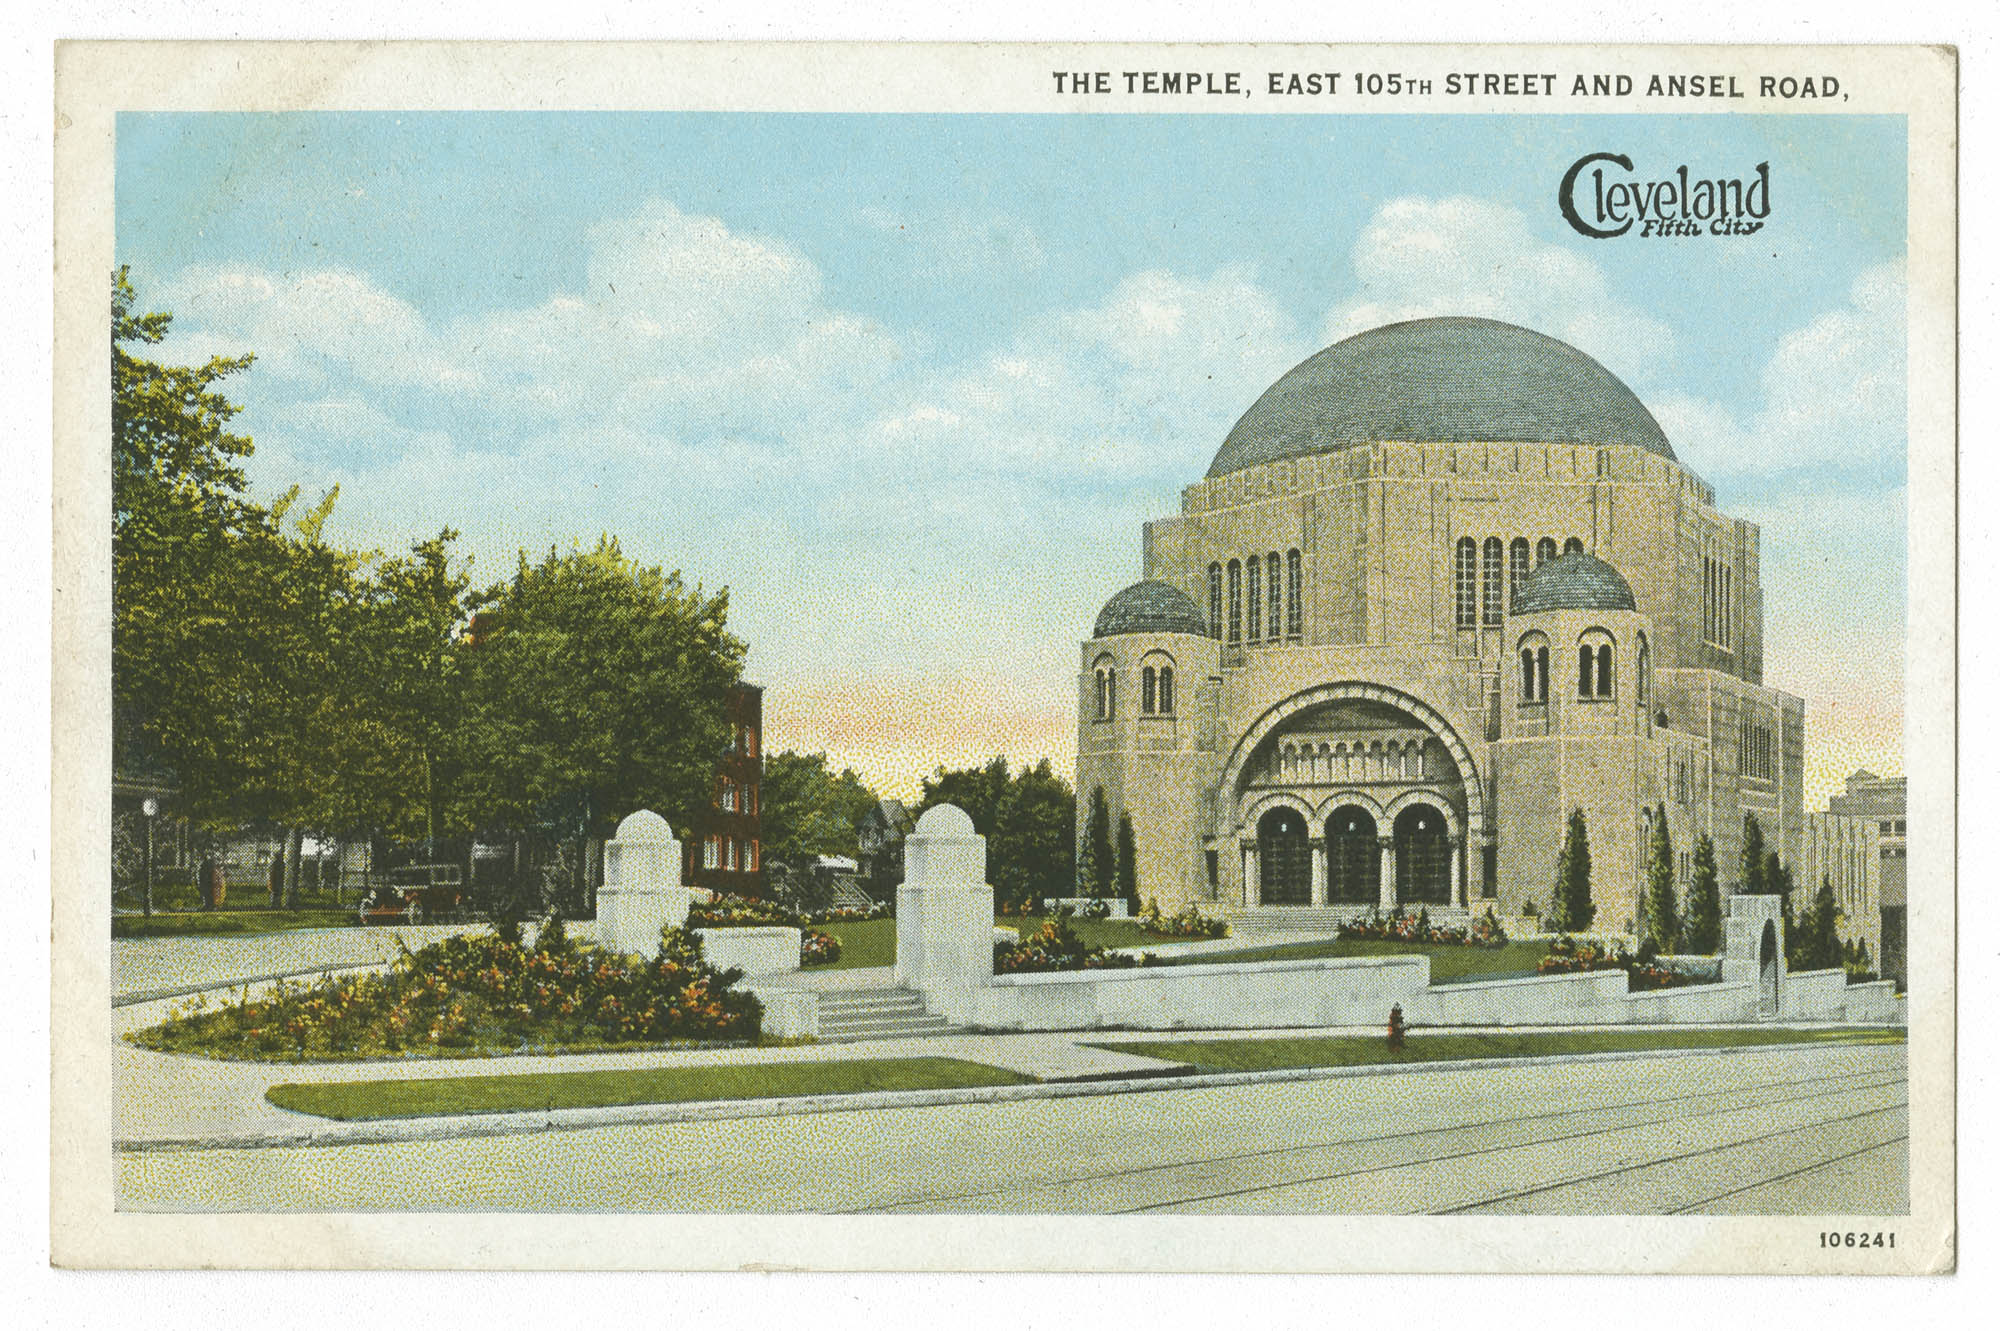 The Temple, East 105th Street and Ansel Road, Cleveland